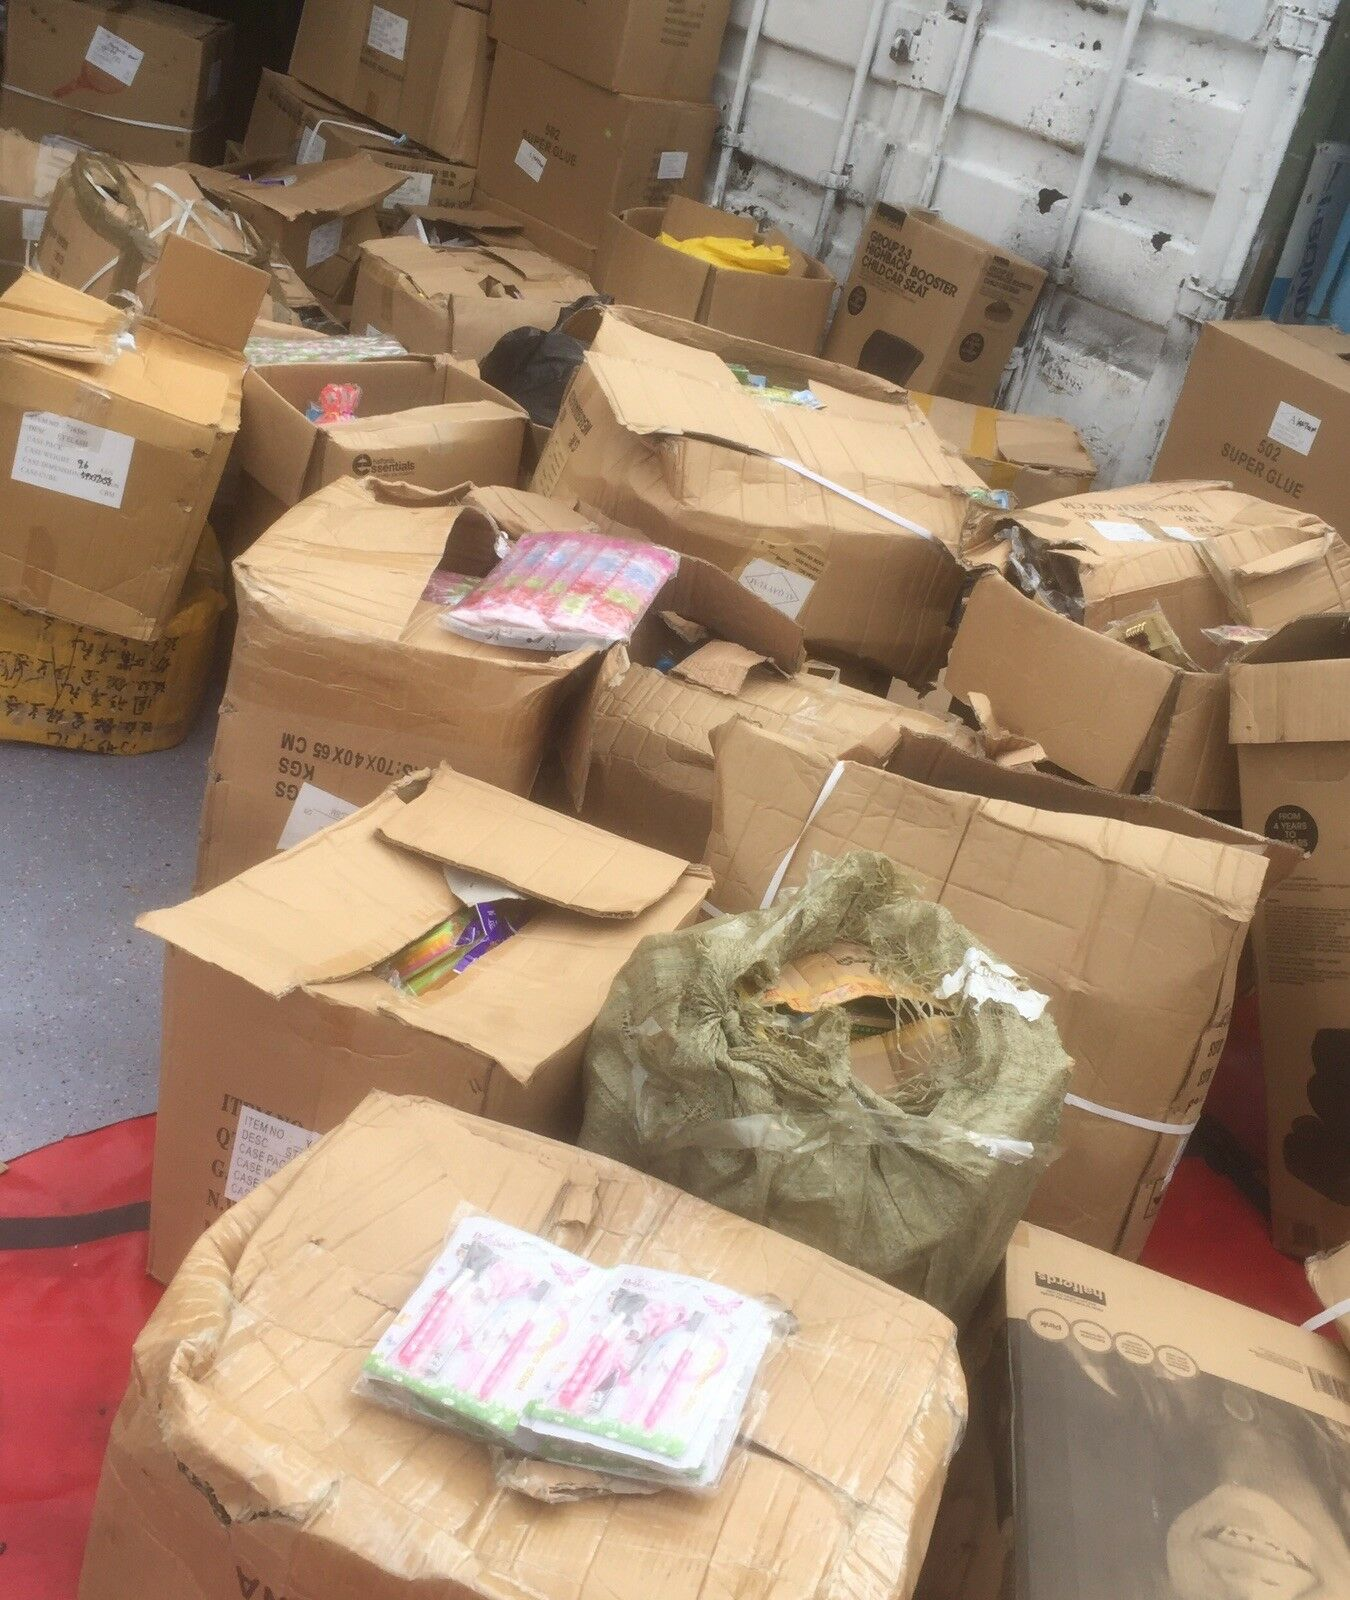 Wholesale Pallet For Sale: BRAND NEW WHOLESALE Job Lot Of 100 Items Mixed Products